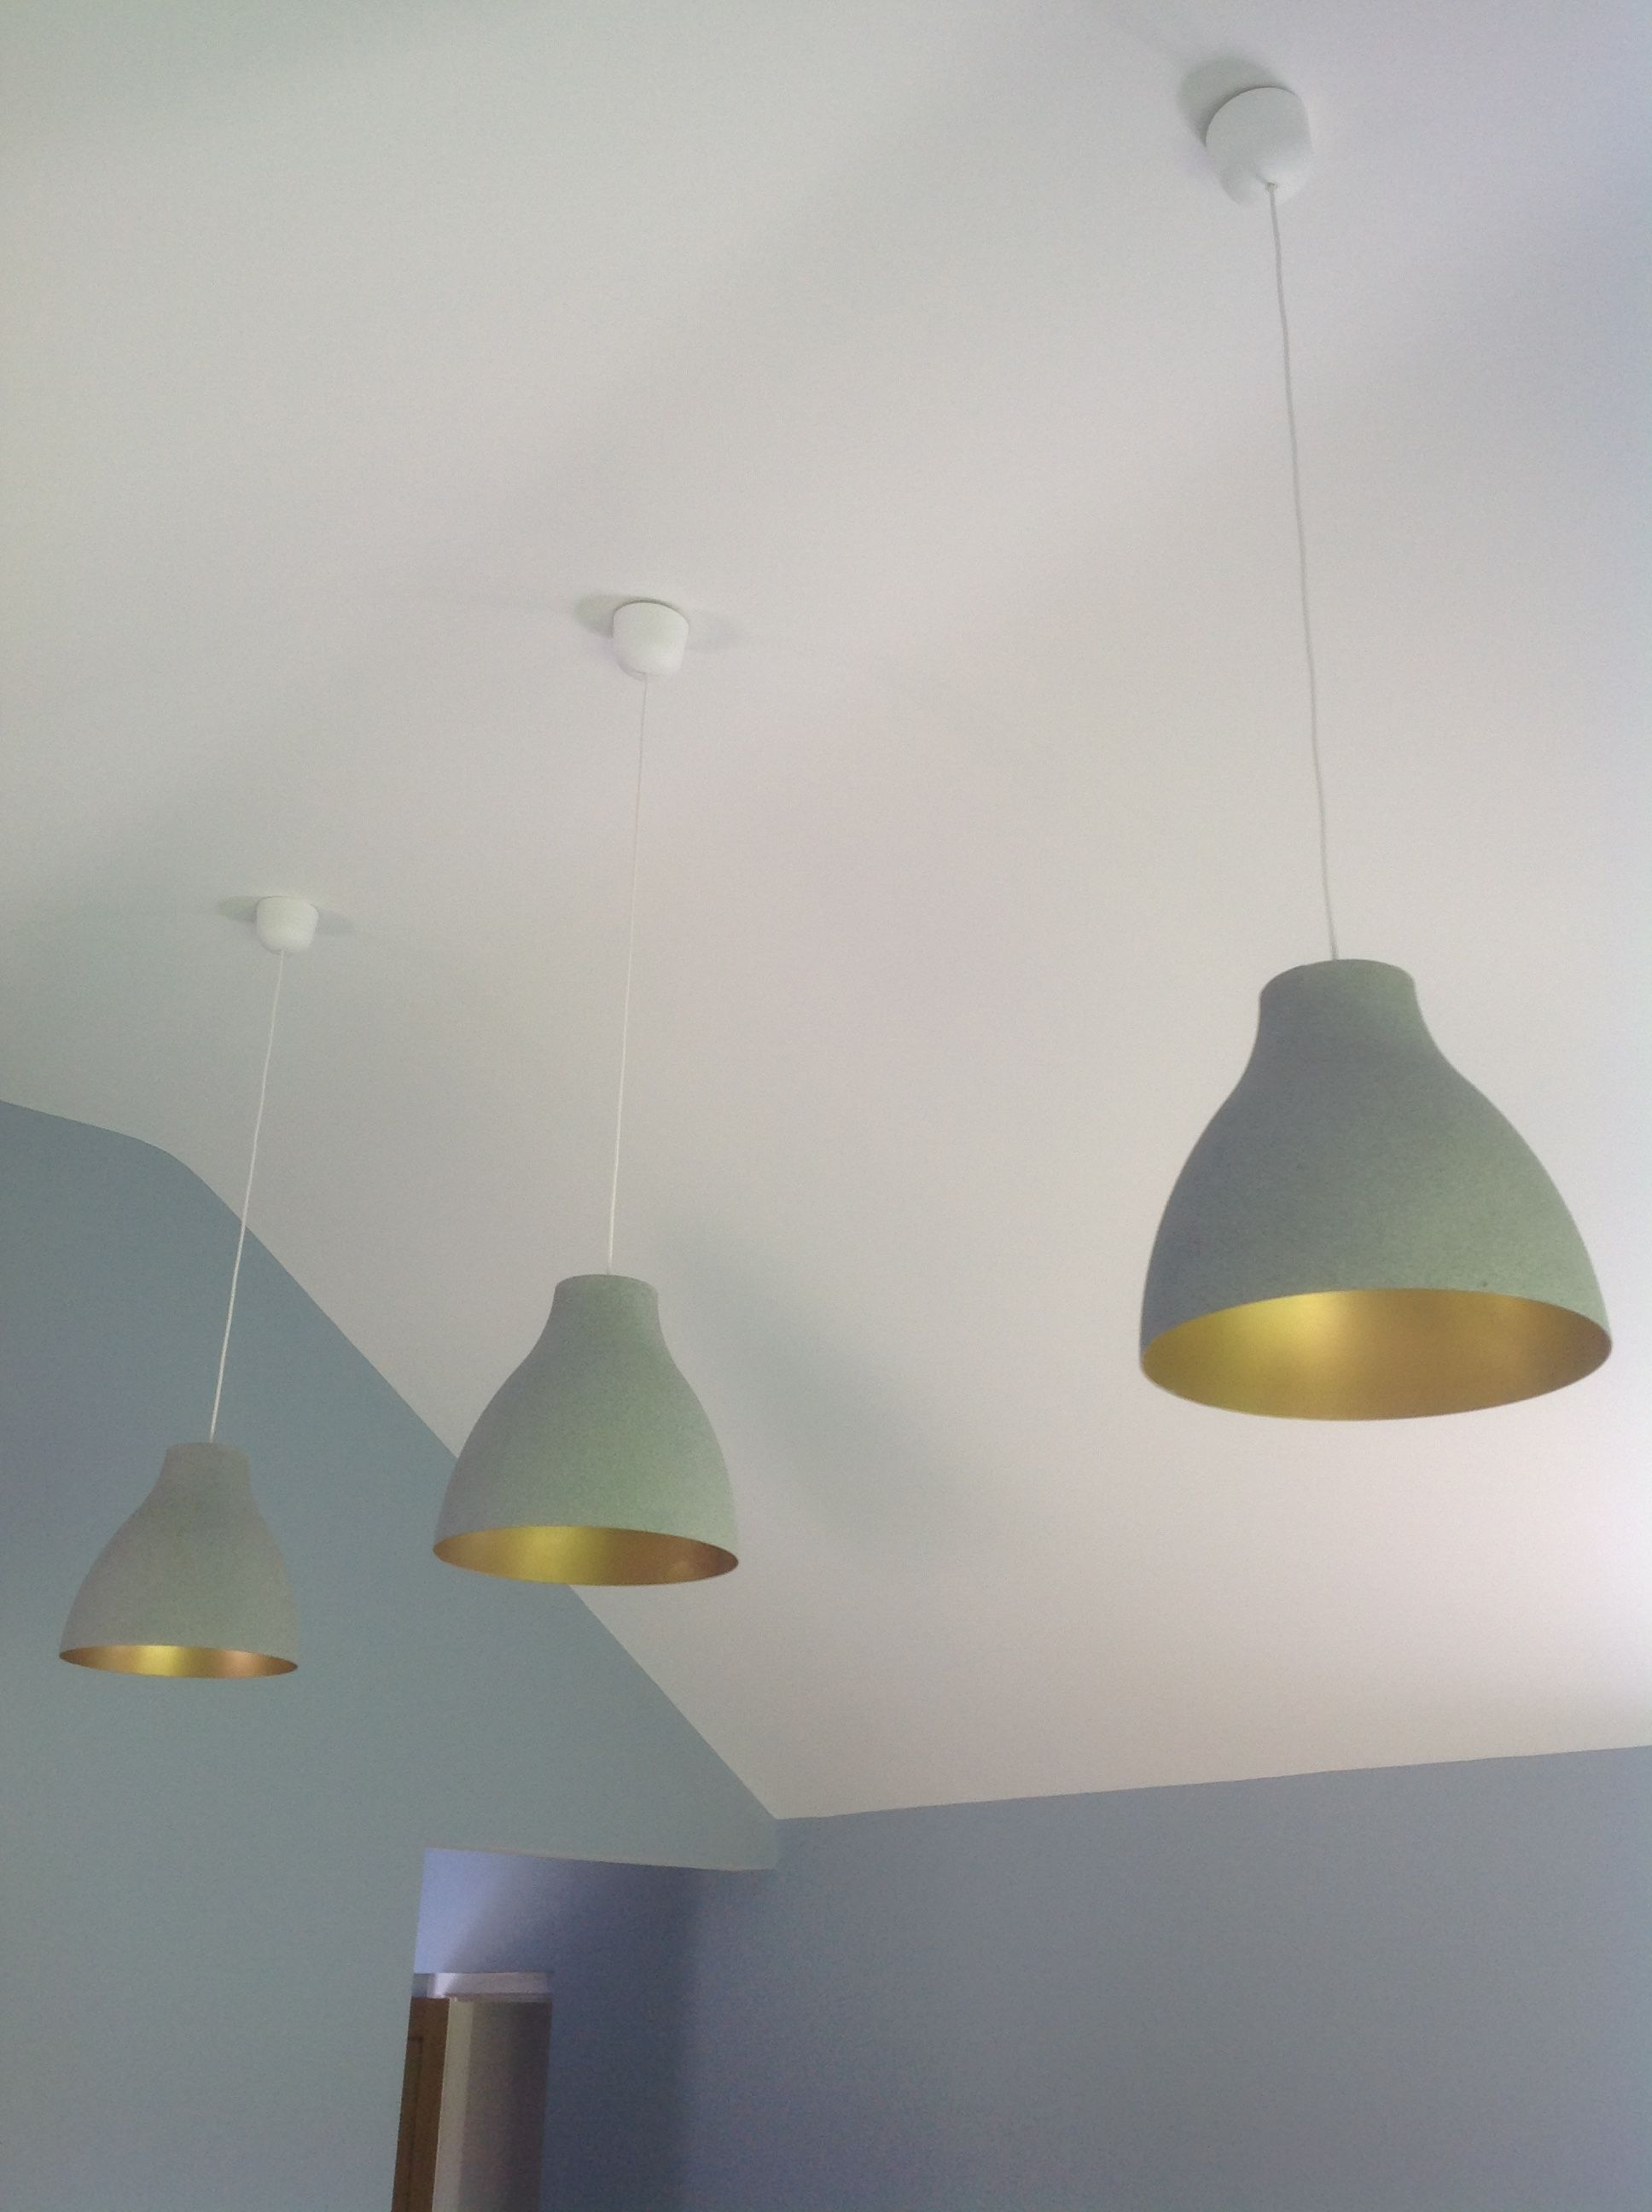 Ikea Hack Melodi White Plastic Lampshades Transformed In